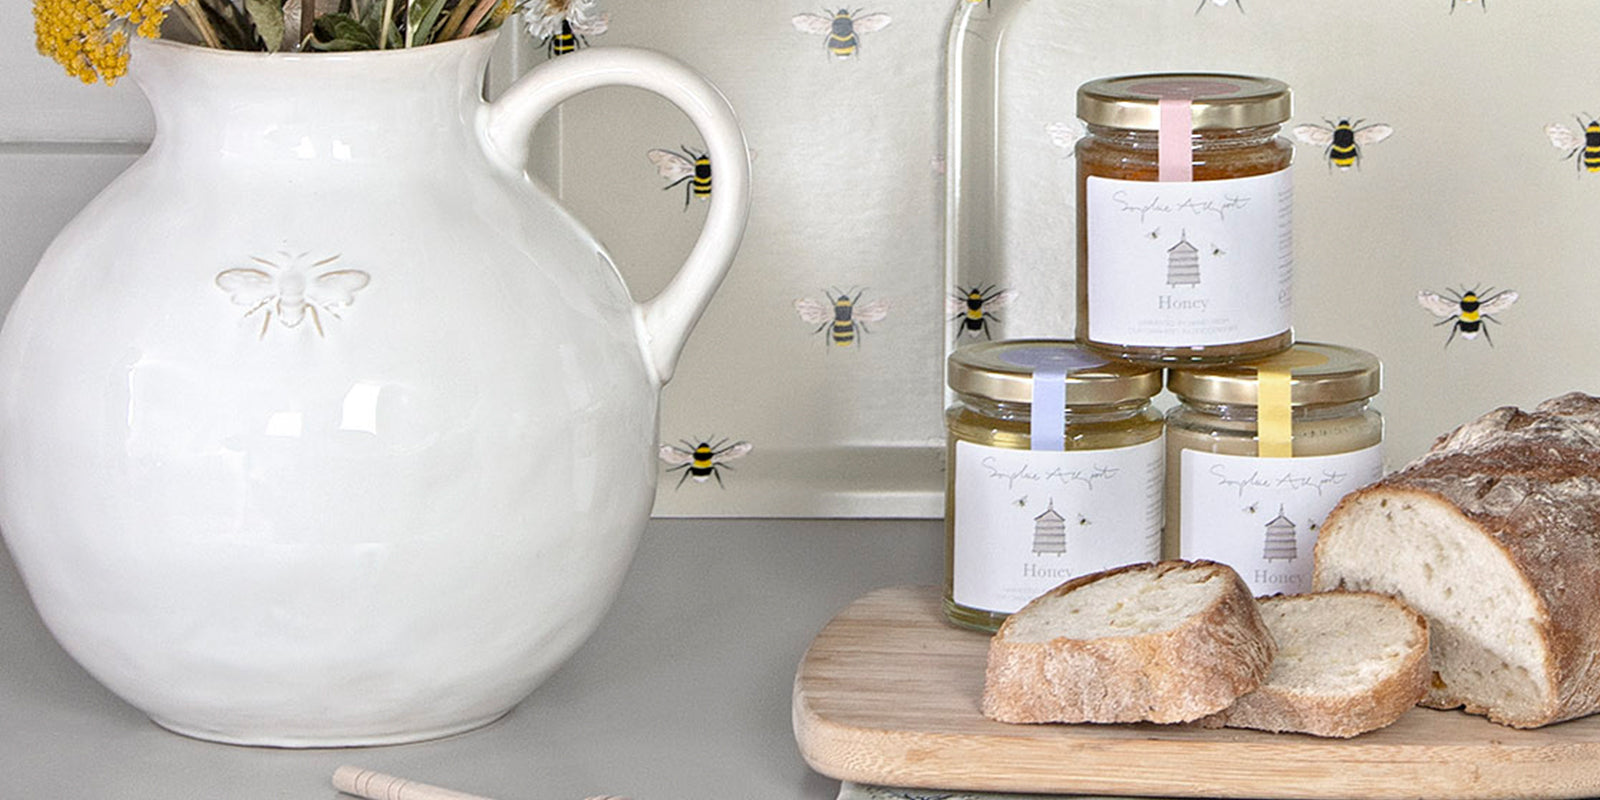 Larder and Honey by Sophie Allport